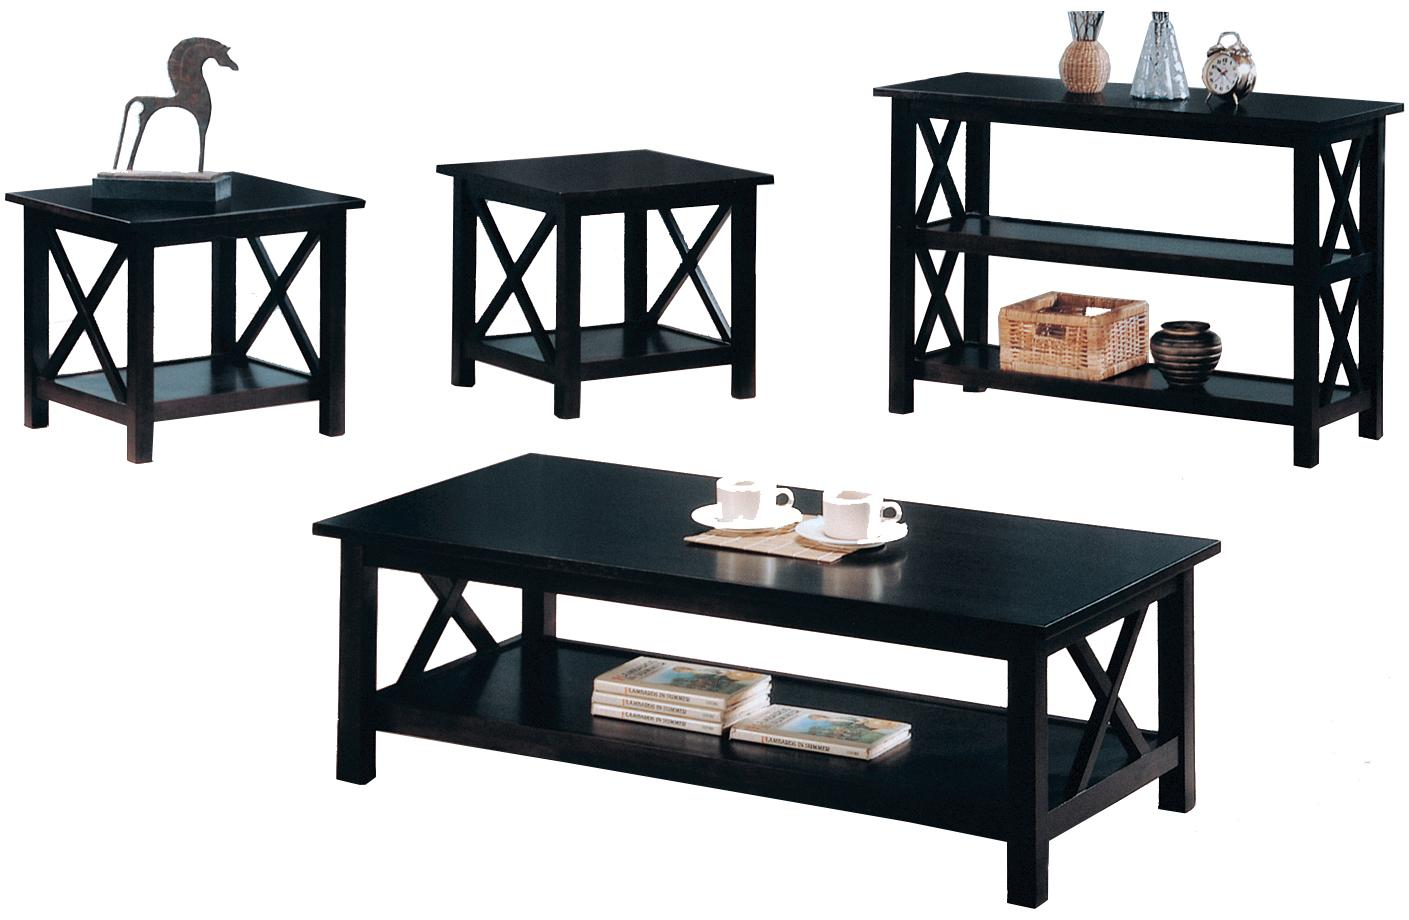 extraordinary black end table sets mirror freezer wilko set wood mainstays target lamp tablecloth chairs roll shades leg bulk glass dunelm base cover and runners asda top